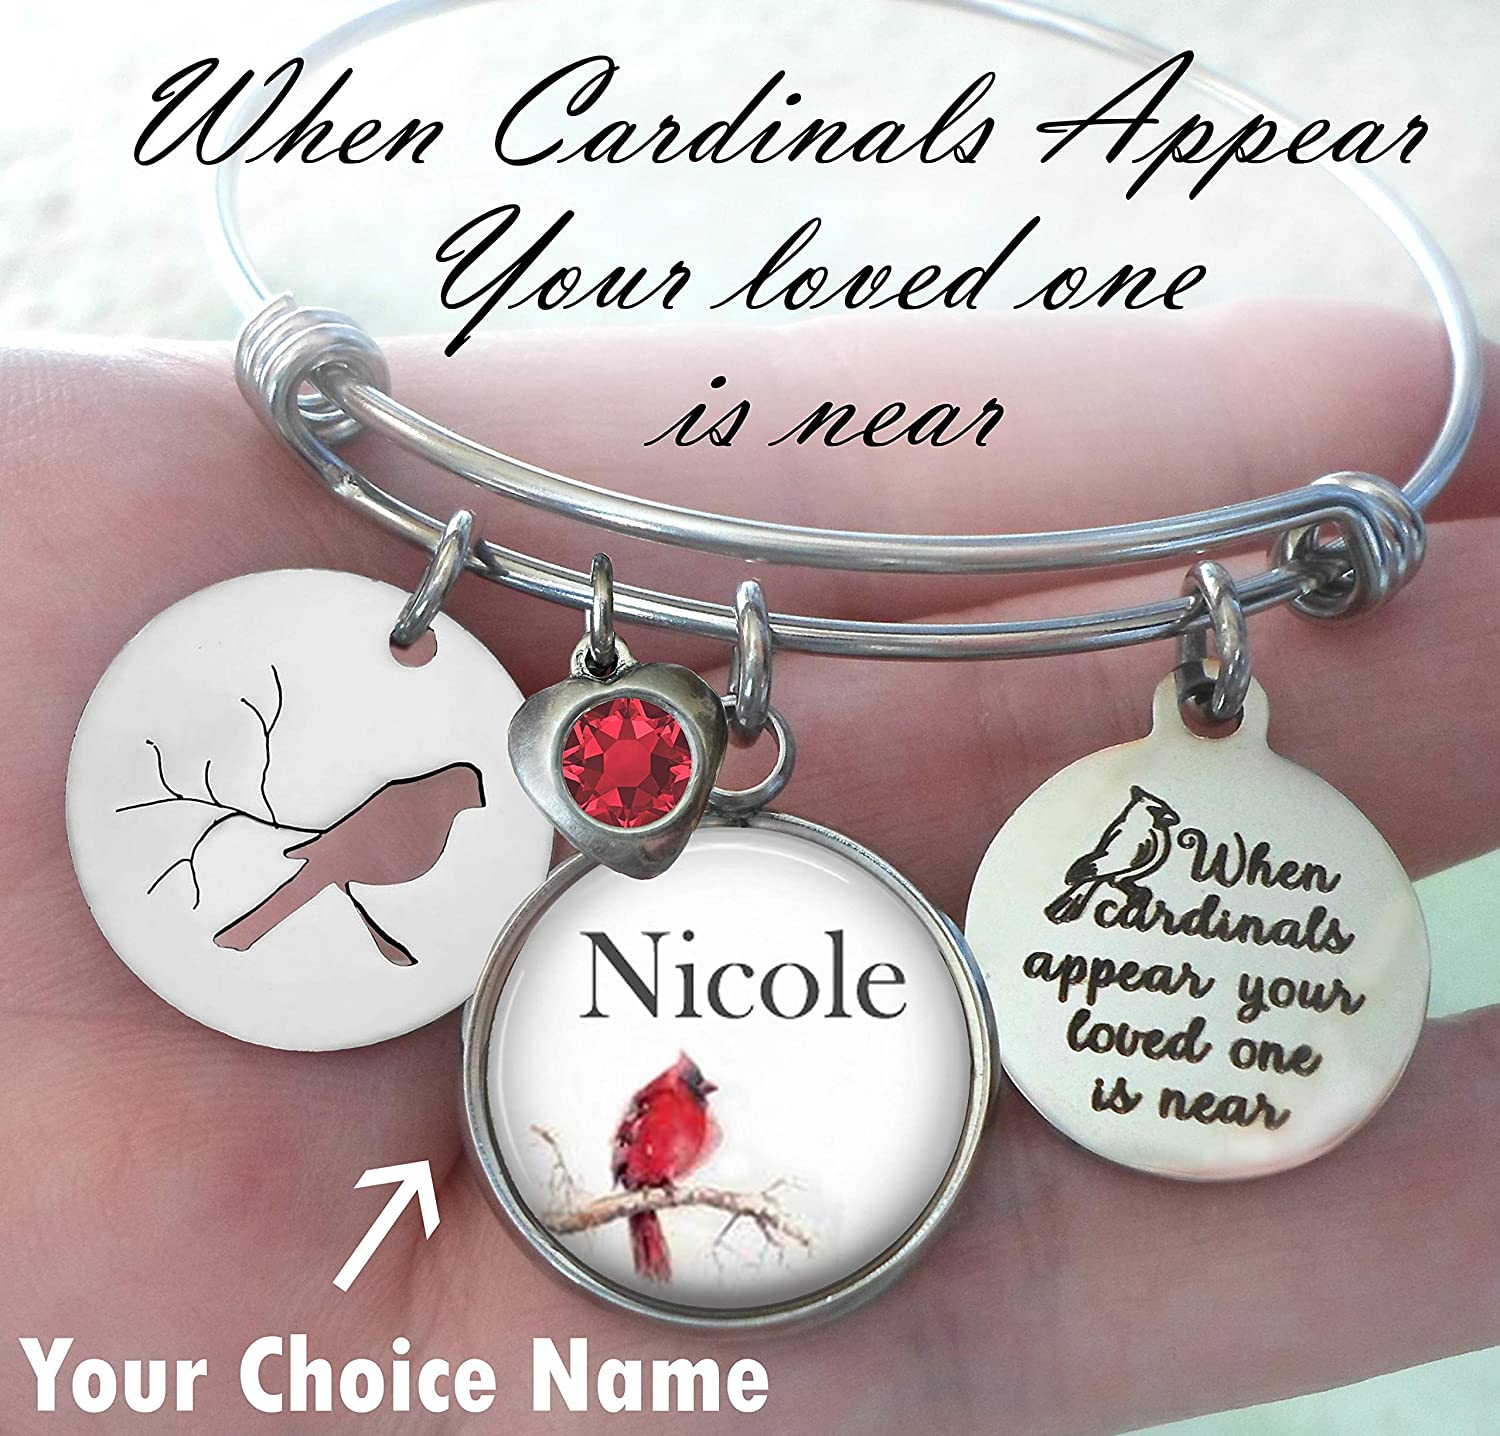 When Cardinals Appear Your Loved One Is Near,Custom Name Memorial Bangle Bracelet, Grief Relief, Sympathy Bereavement Gift, 4 Sizes, Little Girl, Teens, Small, Medium or Large